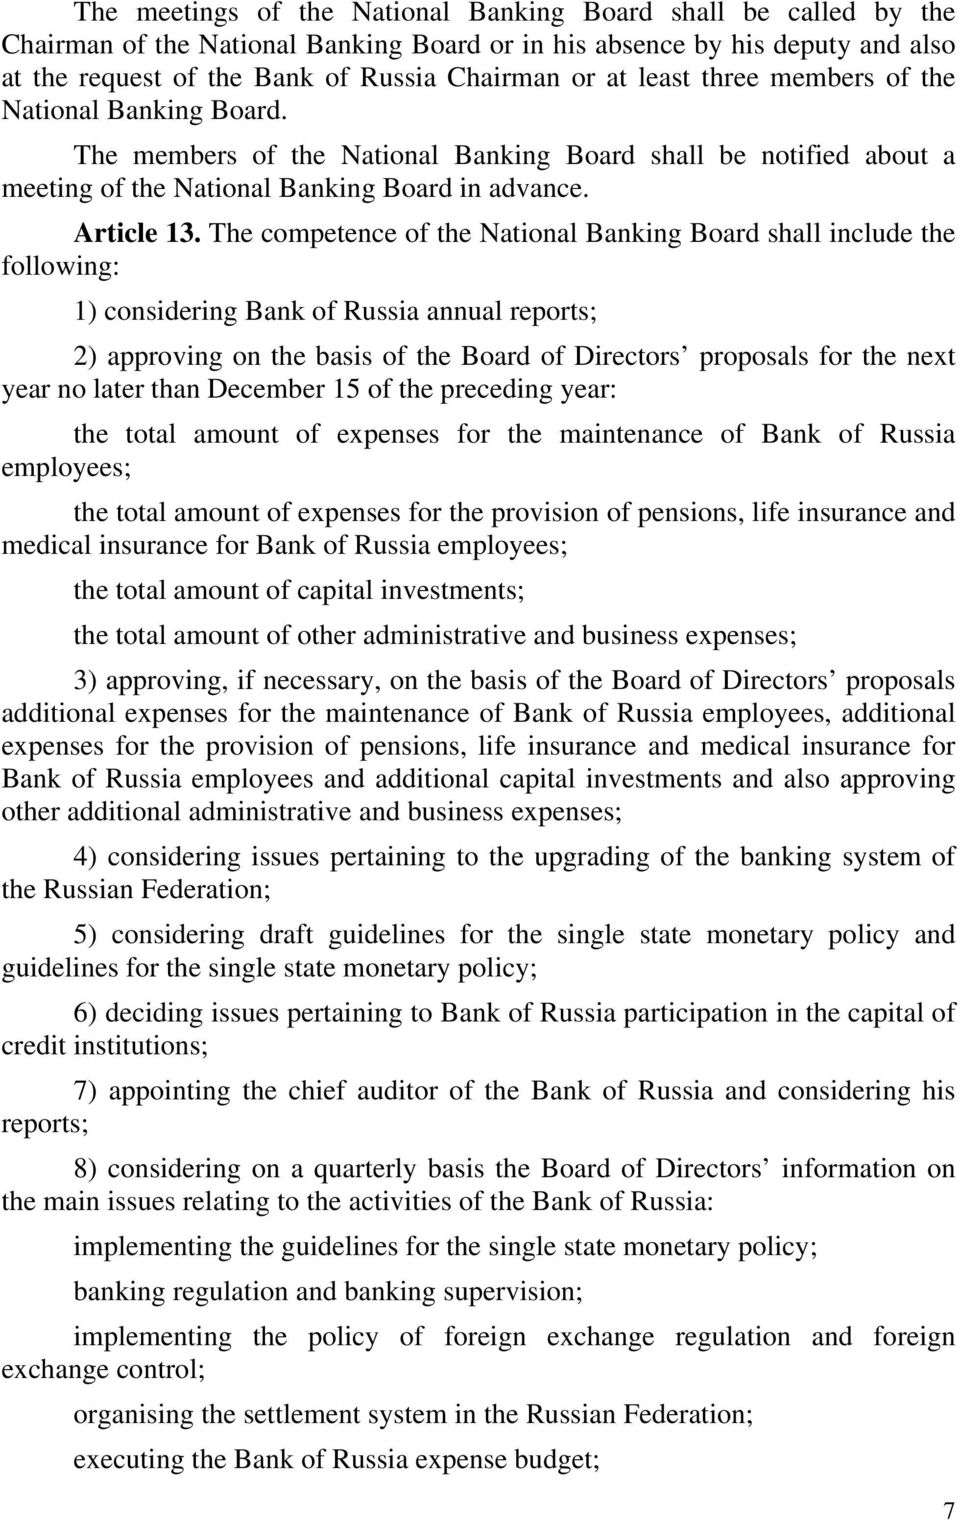 The competence of the National Banking Board shall include the following: 1) considering Bank of Russia annual reports; 2) approving on the basis of the Board of Directors proposals for the next year